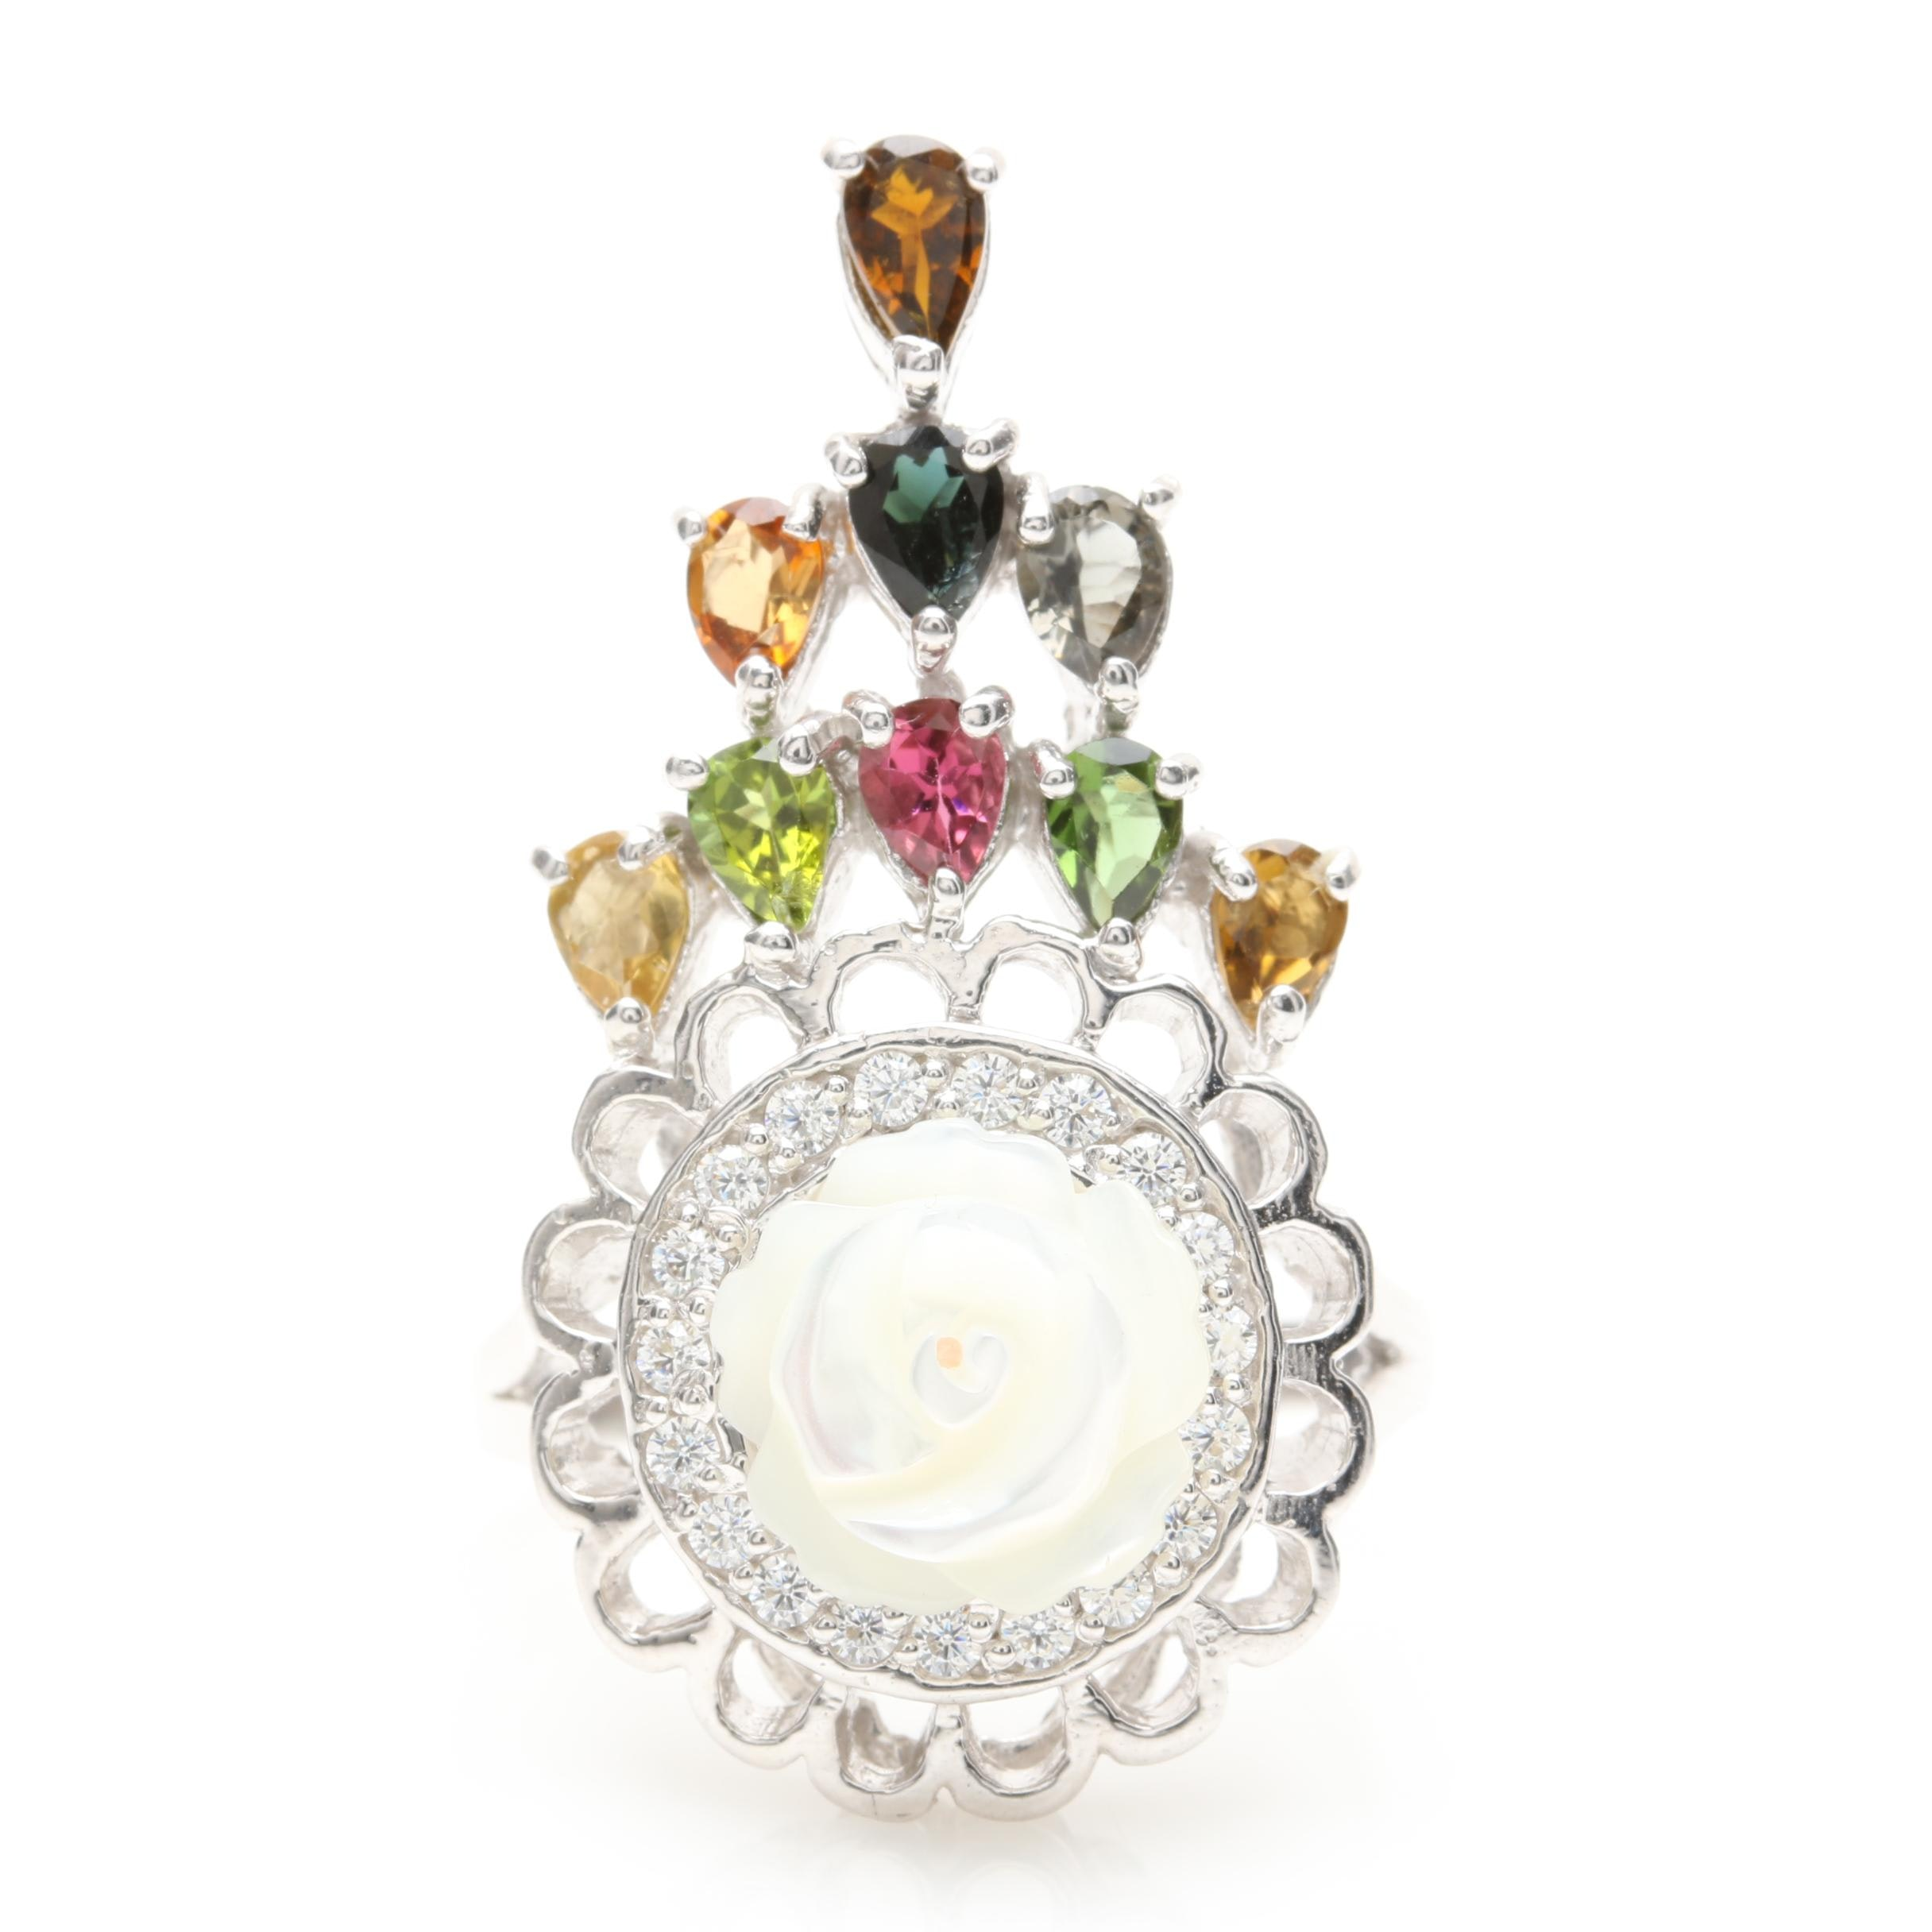 Sterling Silver Mother of Pearl, Citrine, Tourmaline, and Peridot Ring